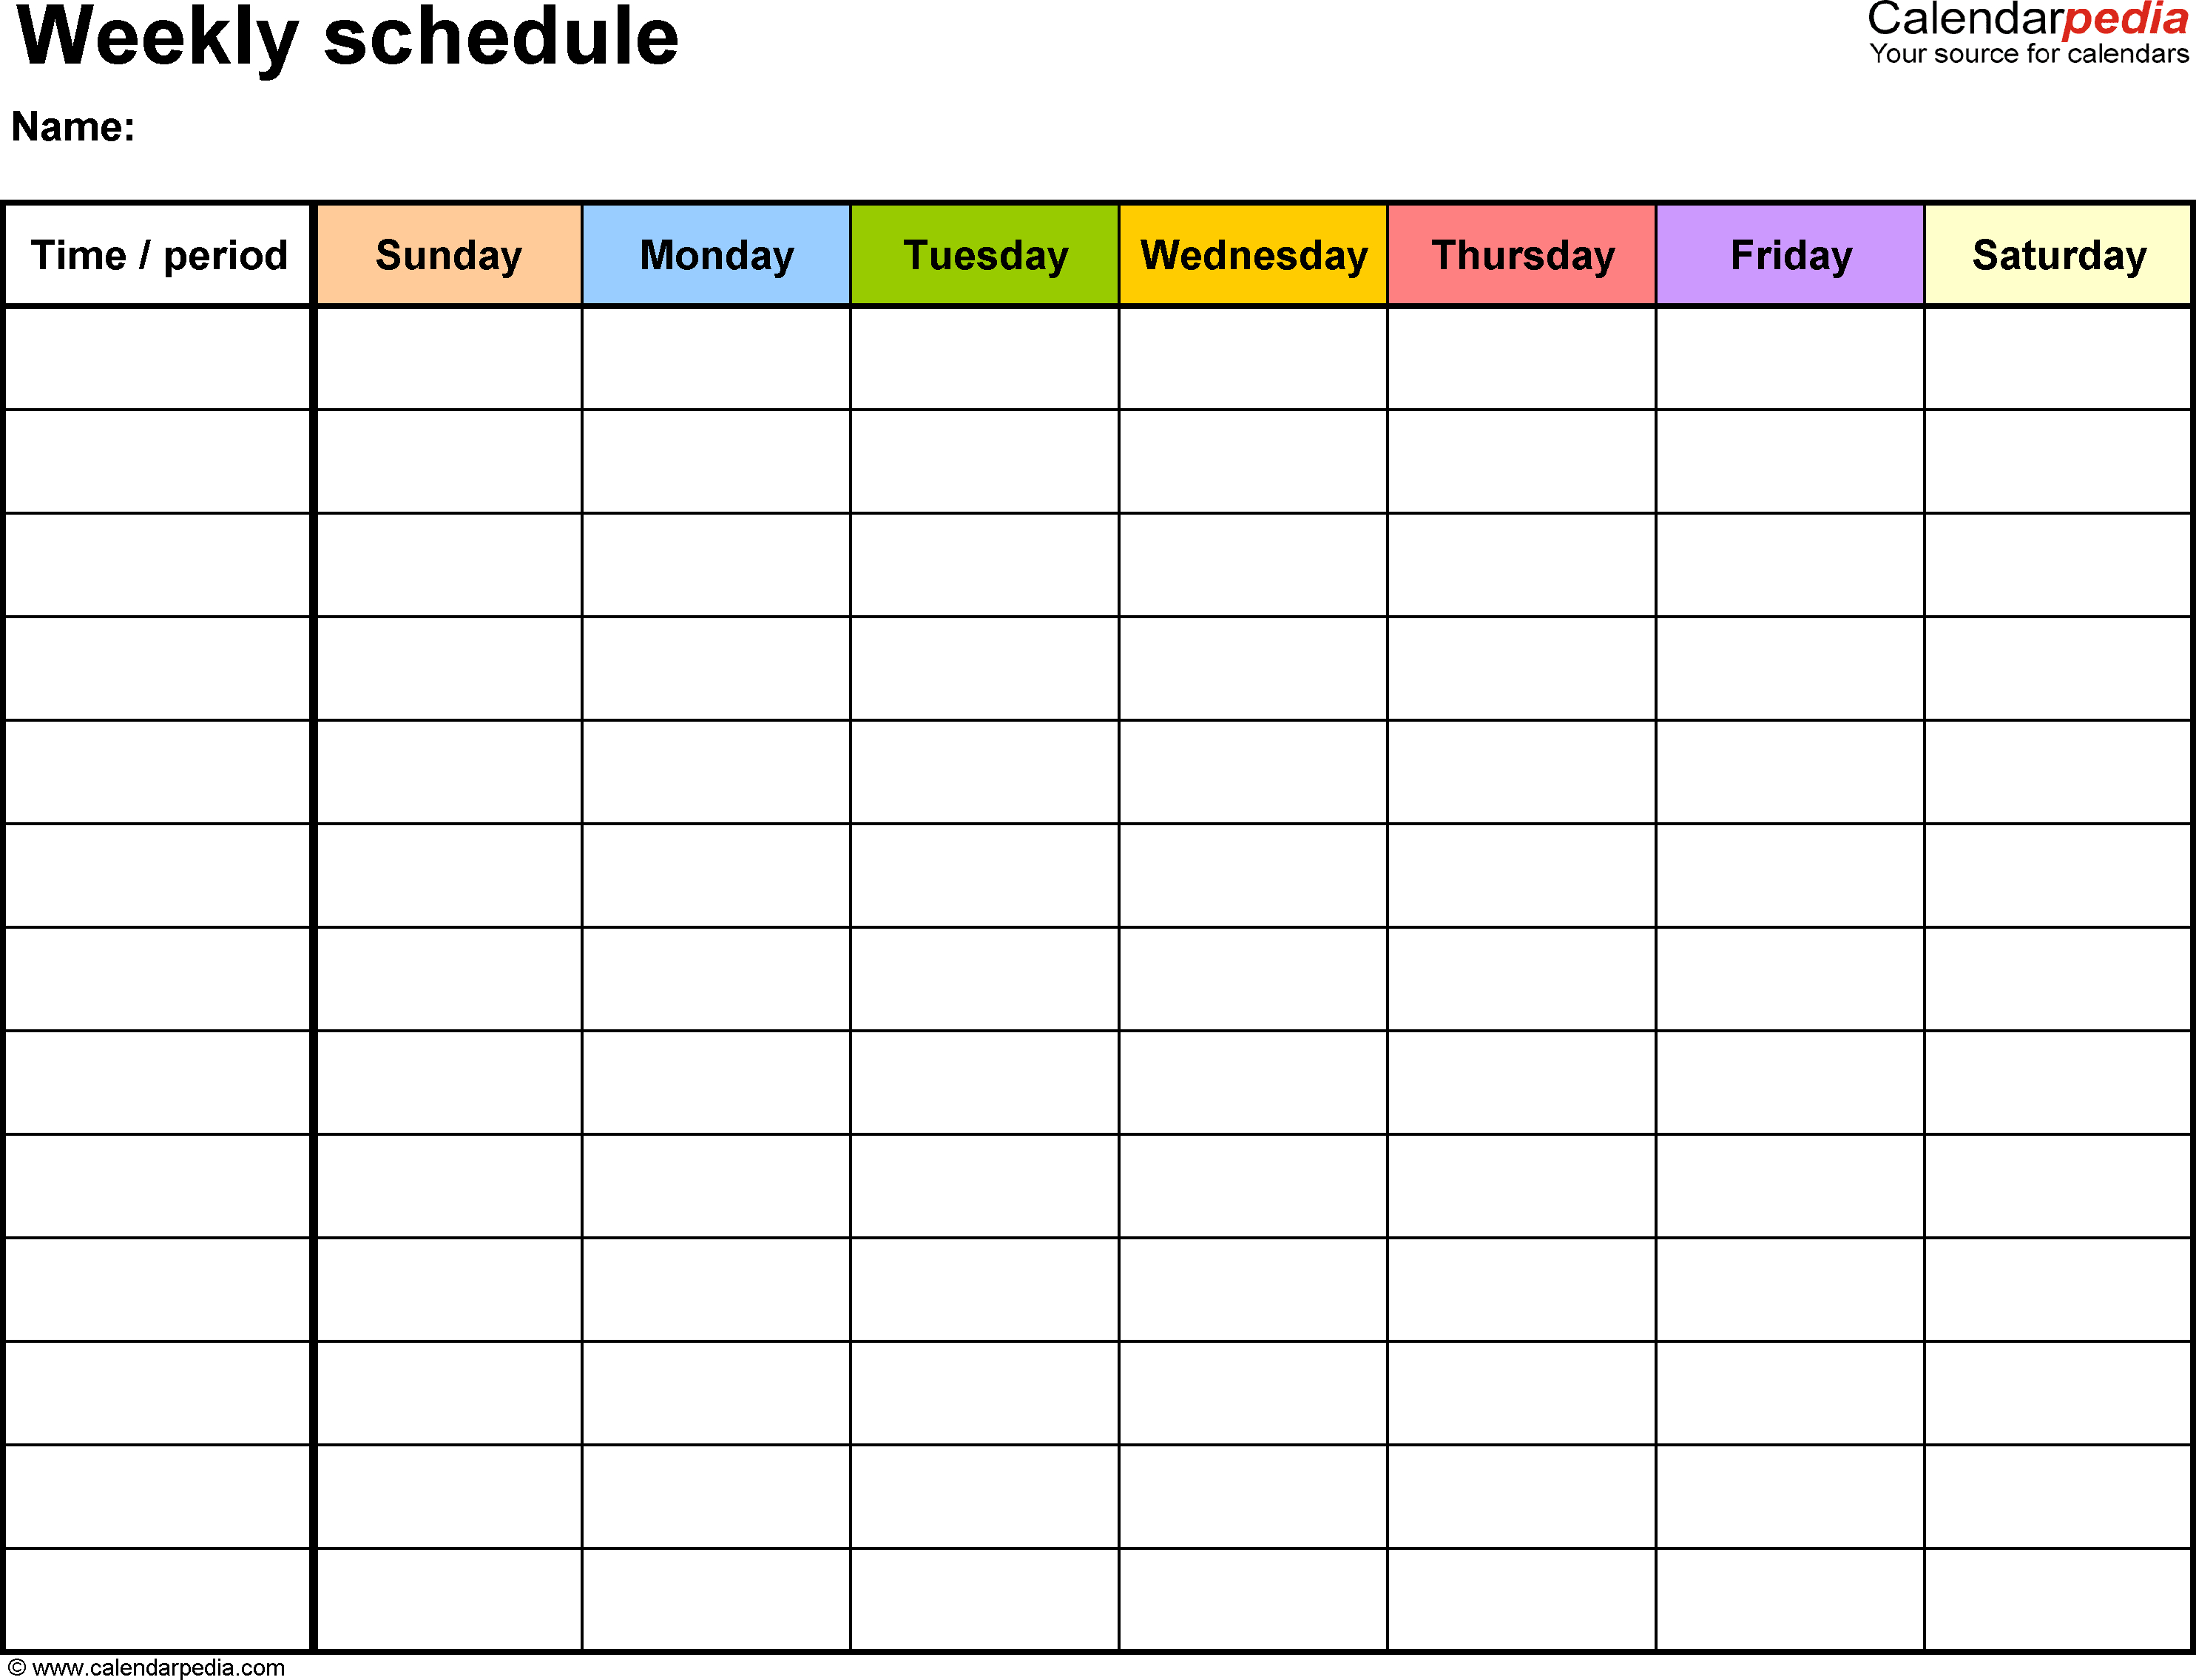 Free Weekly Schedule Templates For Excel - 18 Templates With Employee Schedule Template Excel